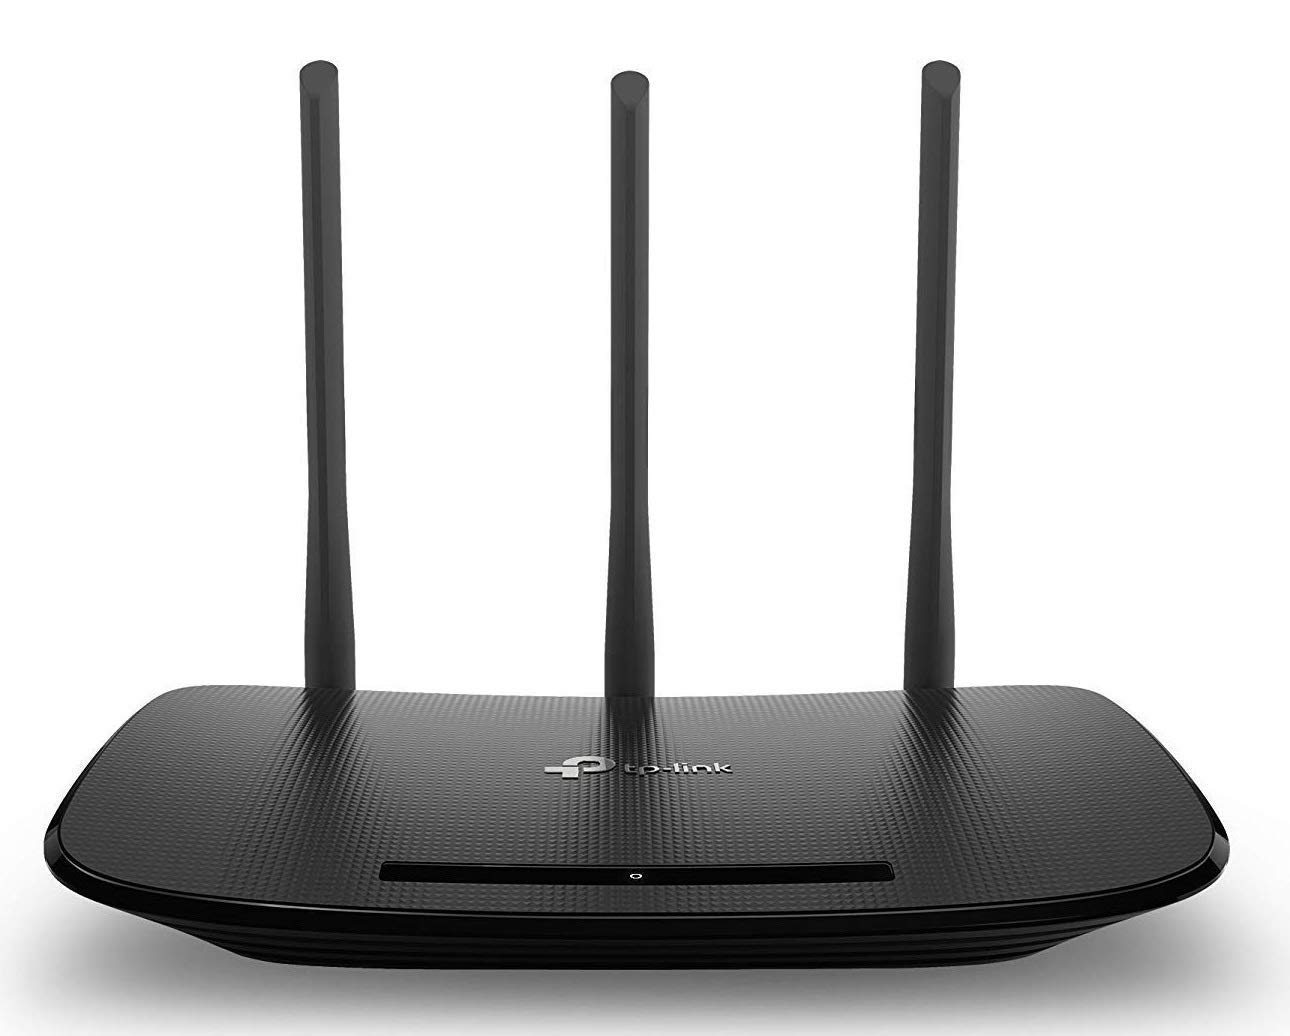 TP-Link N450 Wi-Fi Router - Wireless Internet Router for Home, Wireless Access Point Mode (TL-WR940N)